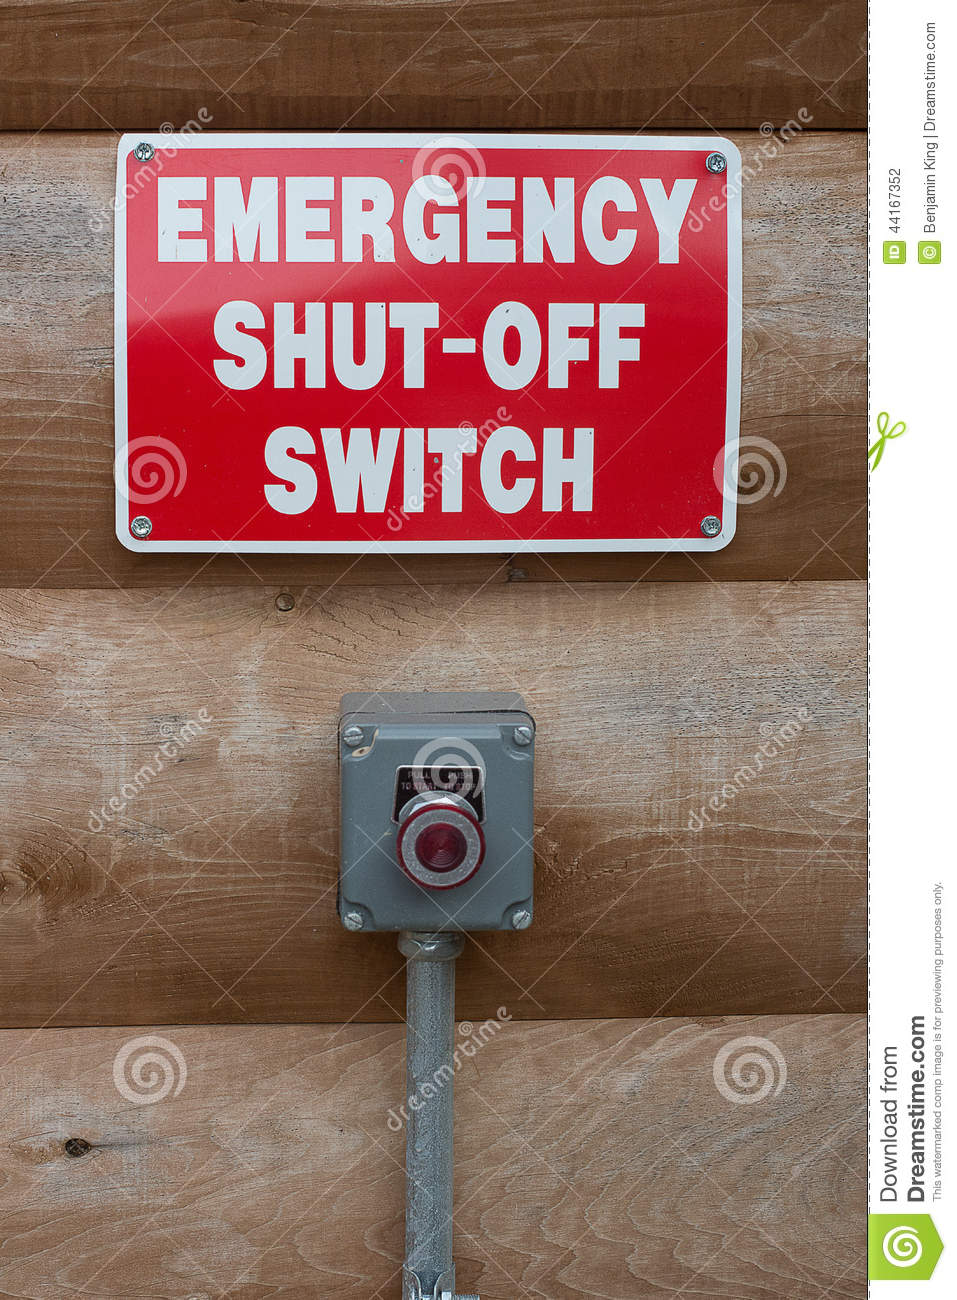 Emergency stop icon clipart emergency off - Royalty Free Stock Photo Download Emergency Shut Off